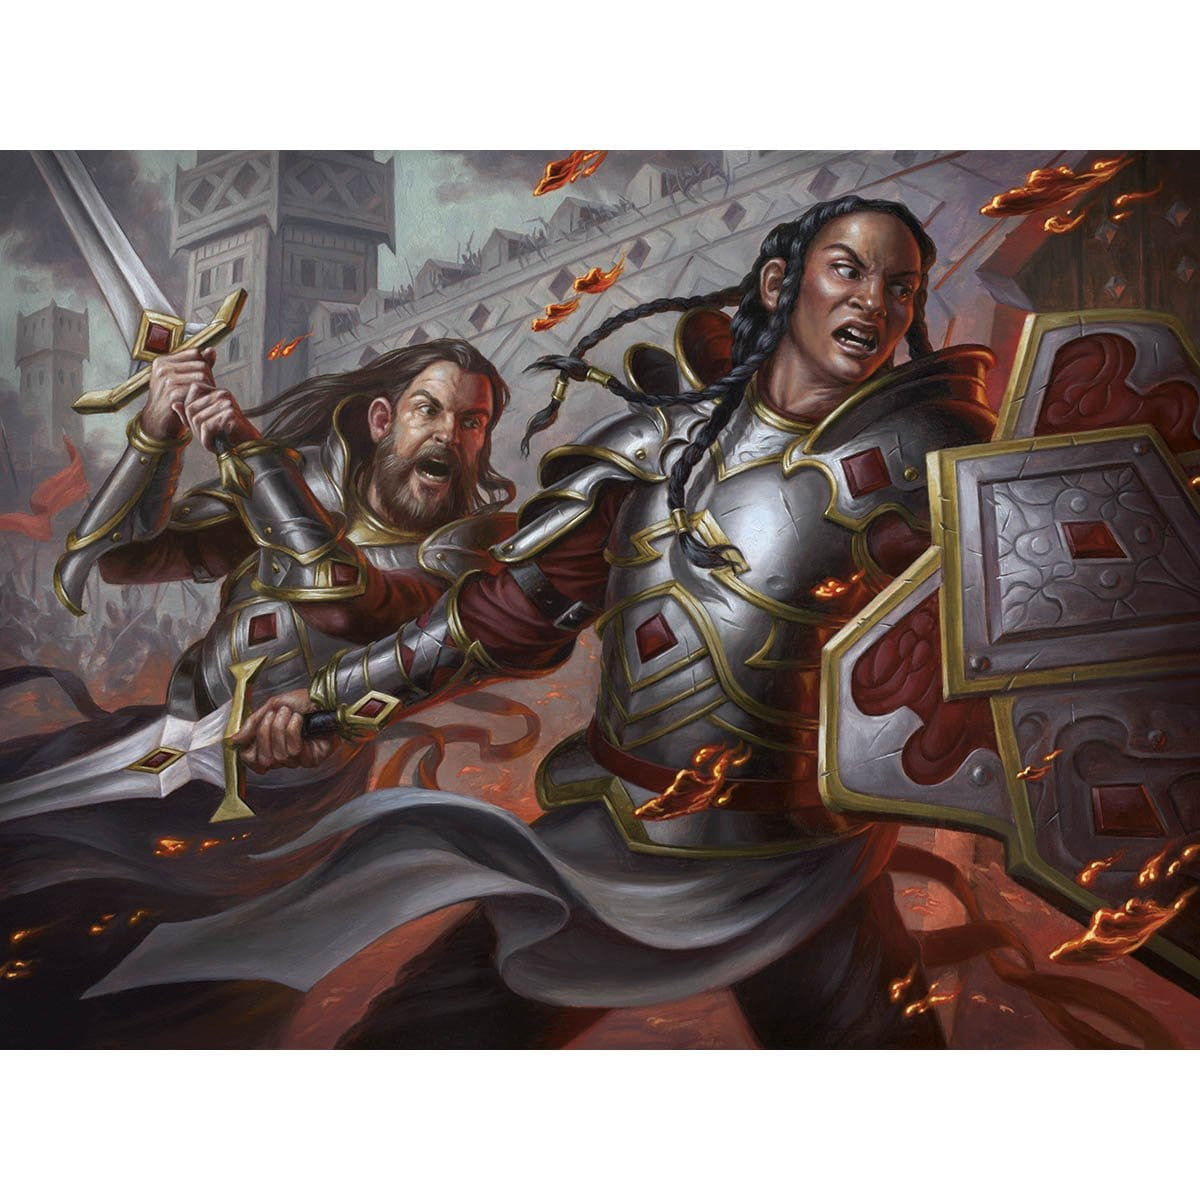 Heroic Reinforcements Print - Print - Original Magic Art - Accessories for Magic the Gathering and other card games